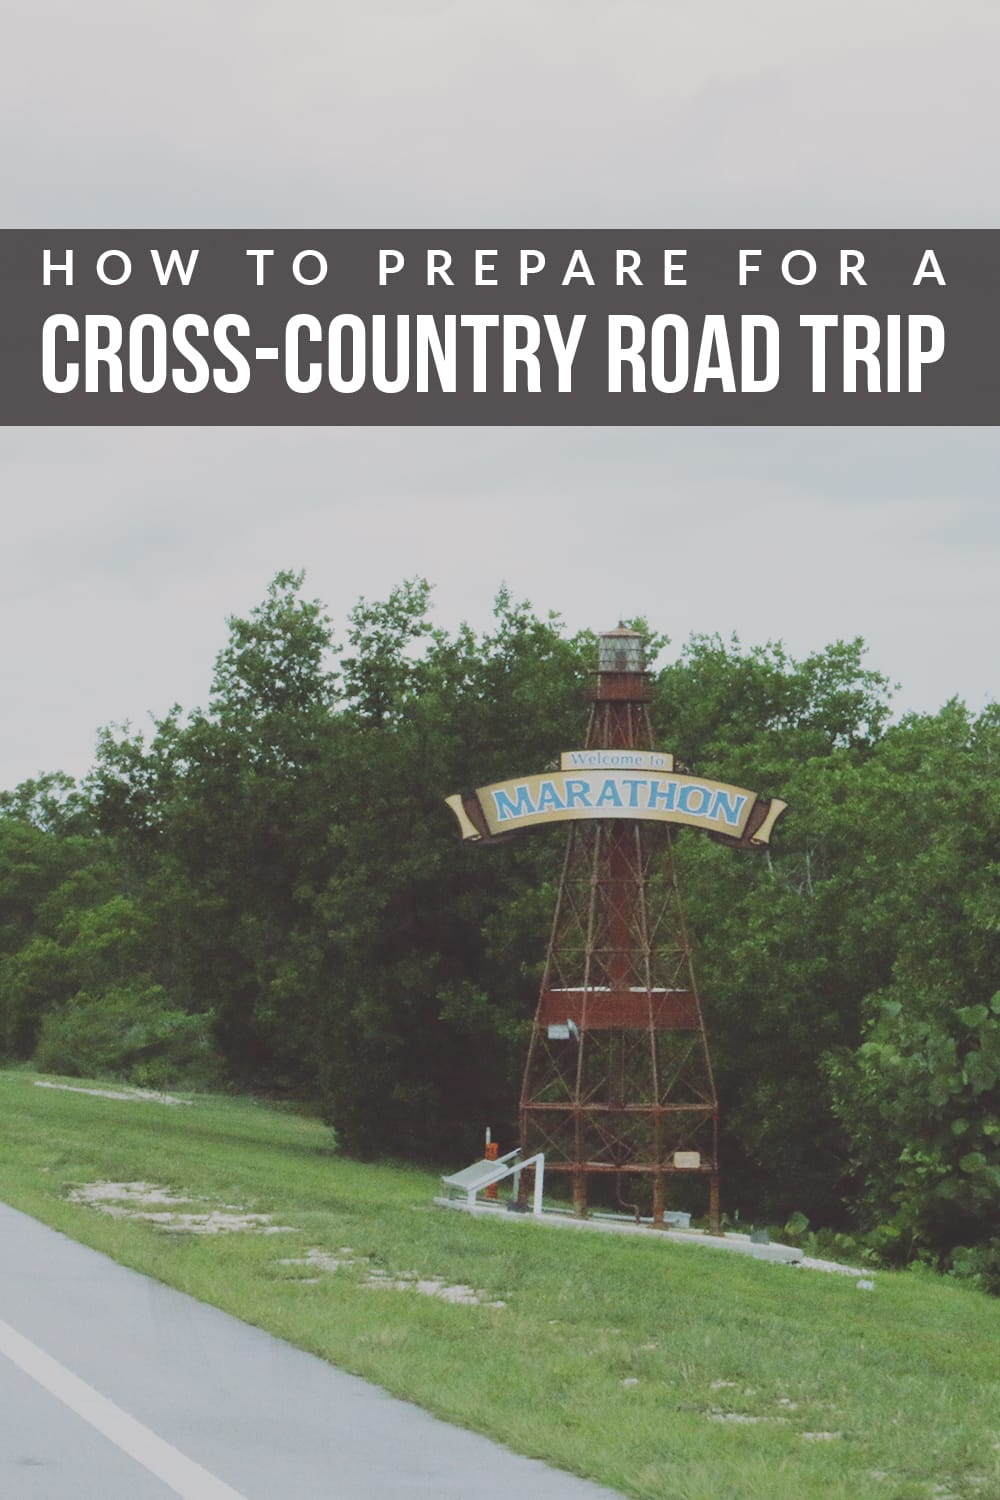 Wanting to head out on the road to tour the country? These easy tips on how to prepare for a cross-country road trip will help!